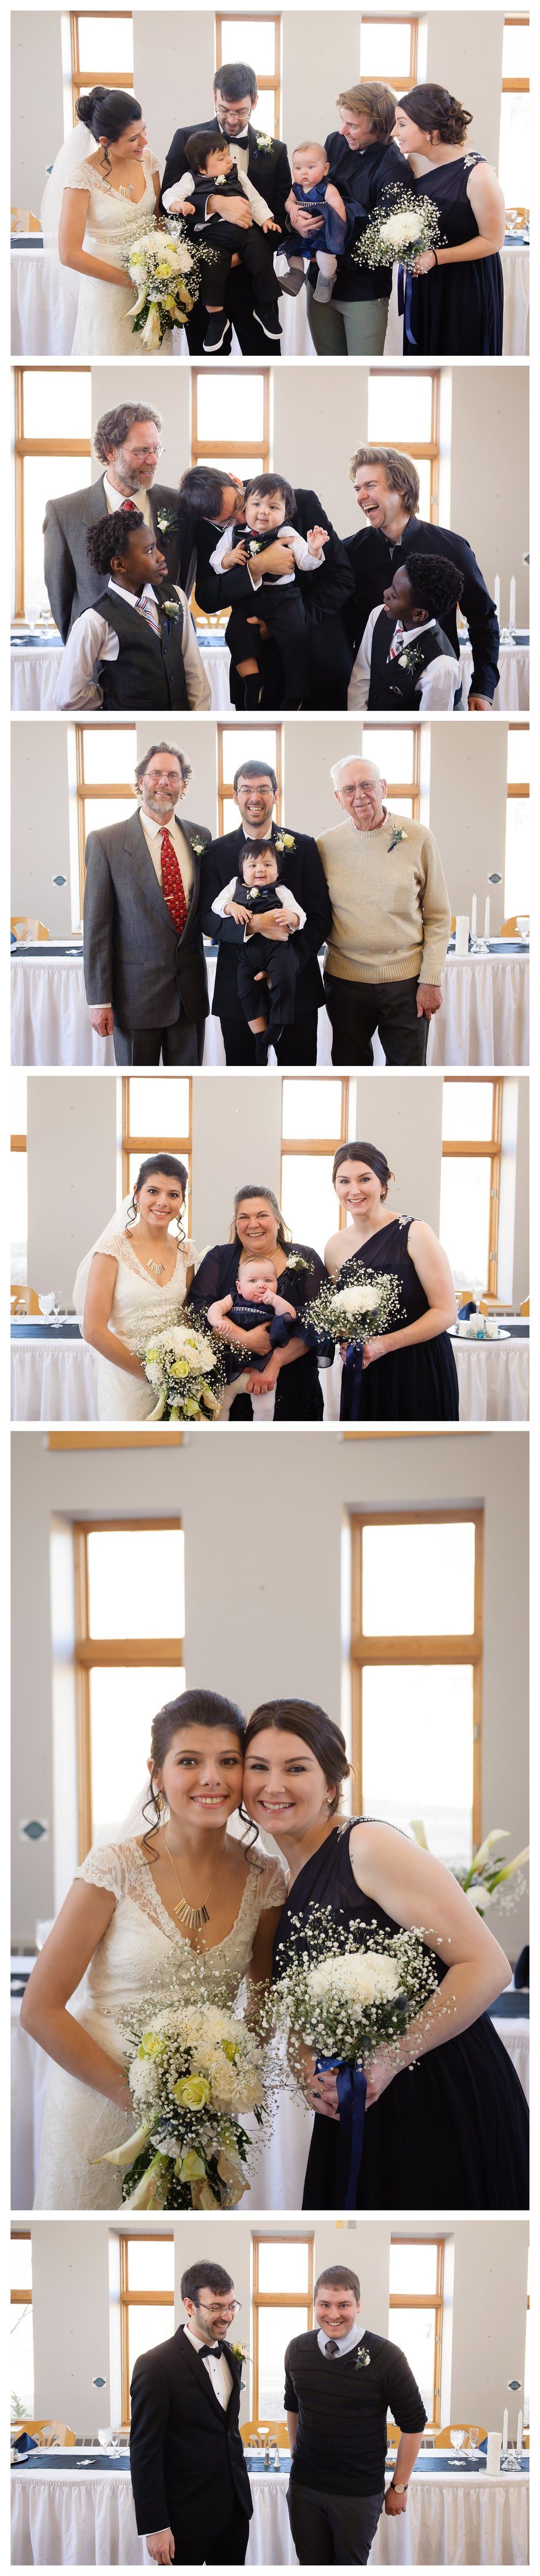 ashland wedding photographer iron river brule wisconsin ps 139 photography jen jensen_0128.jpg